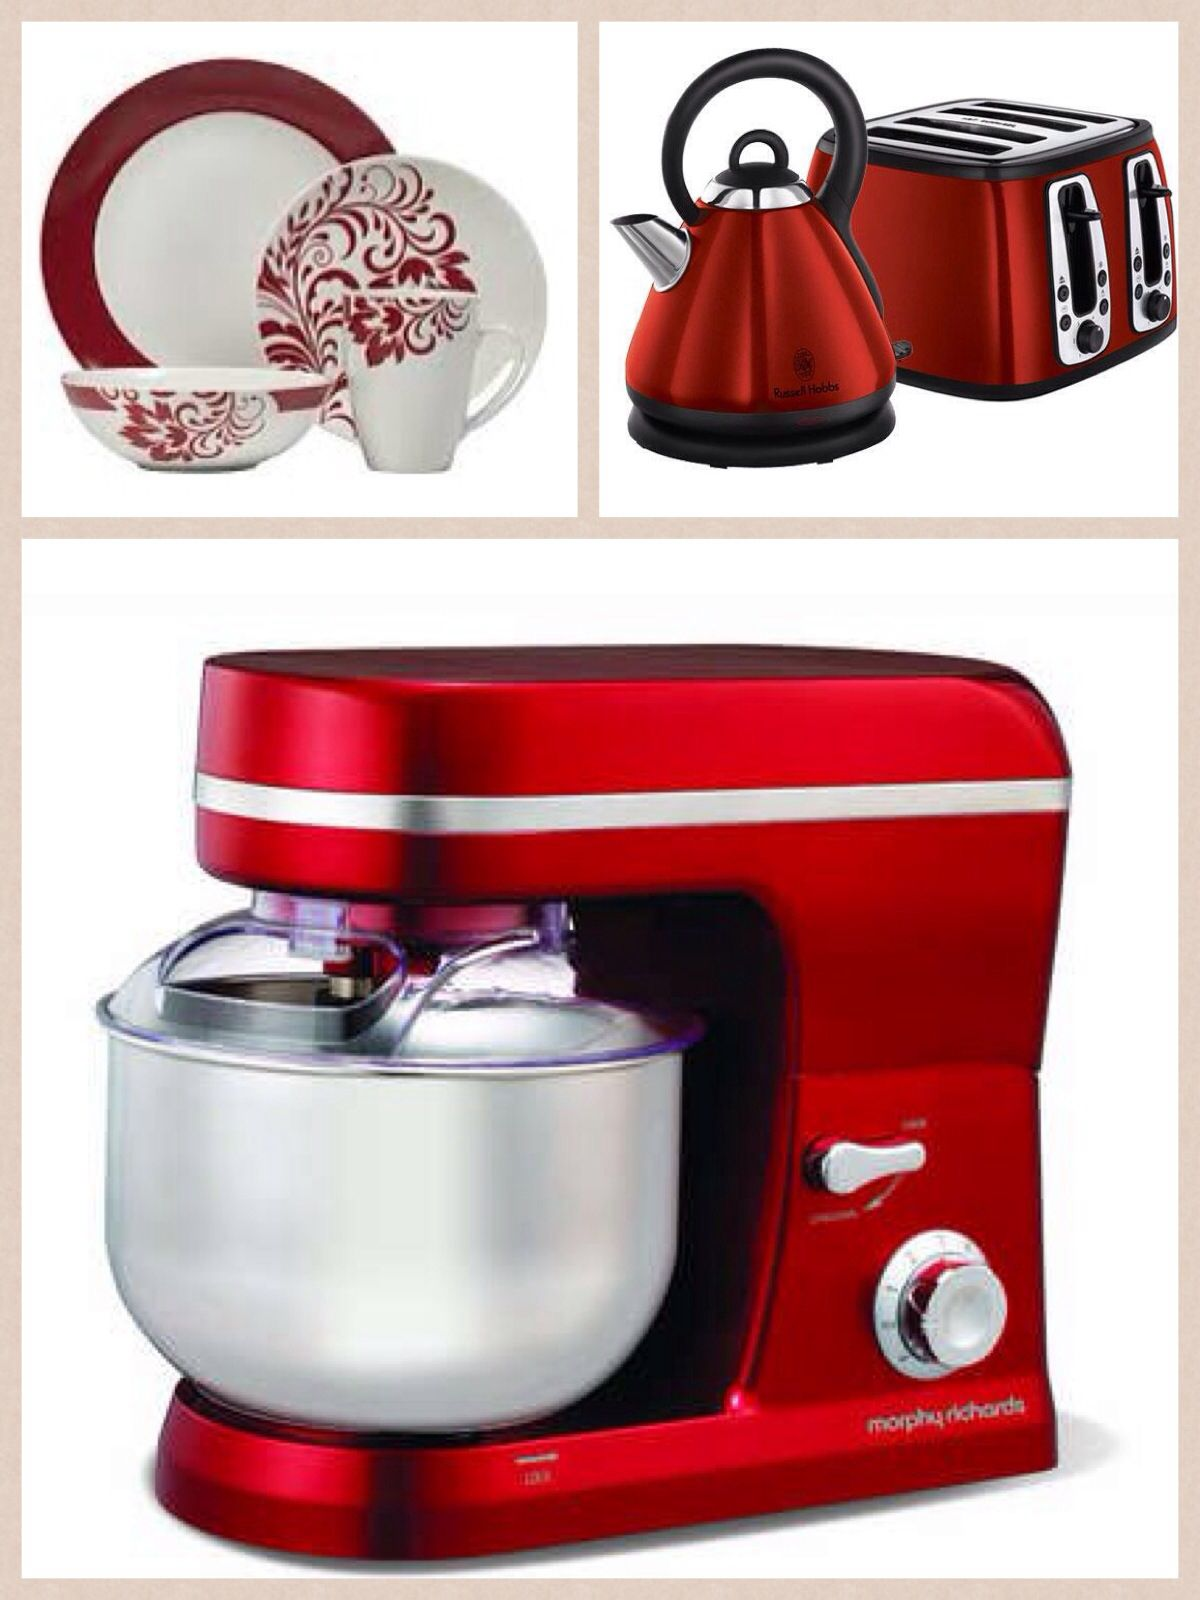 Marvelous Red Appliance And Dinner Set